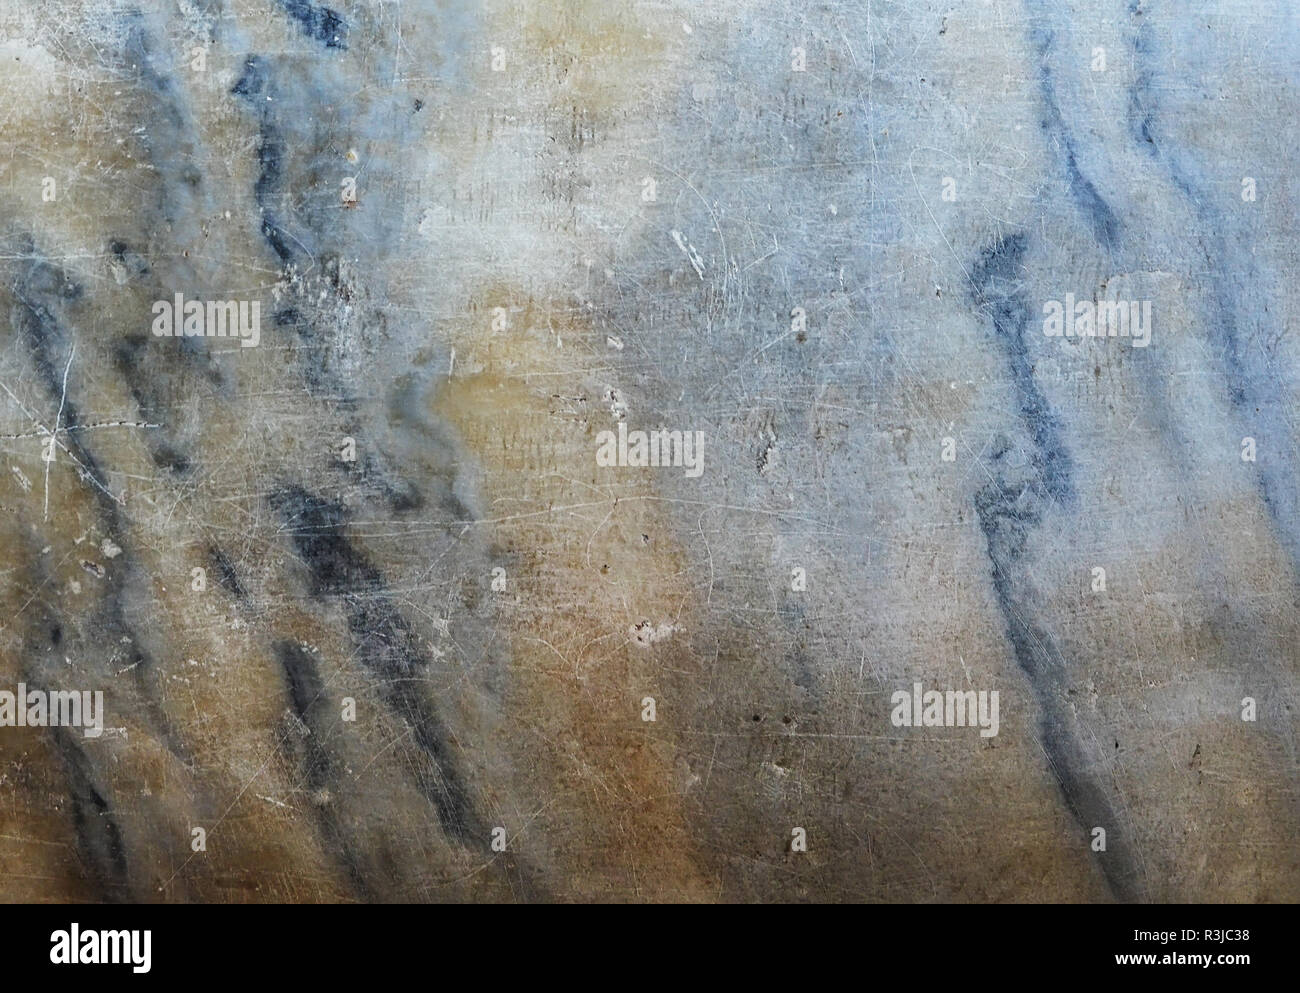 Natural Stone texture for design, Scratched marbled brindle color - Stock Image